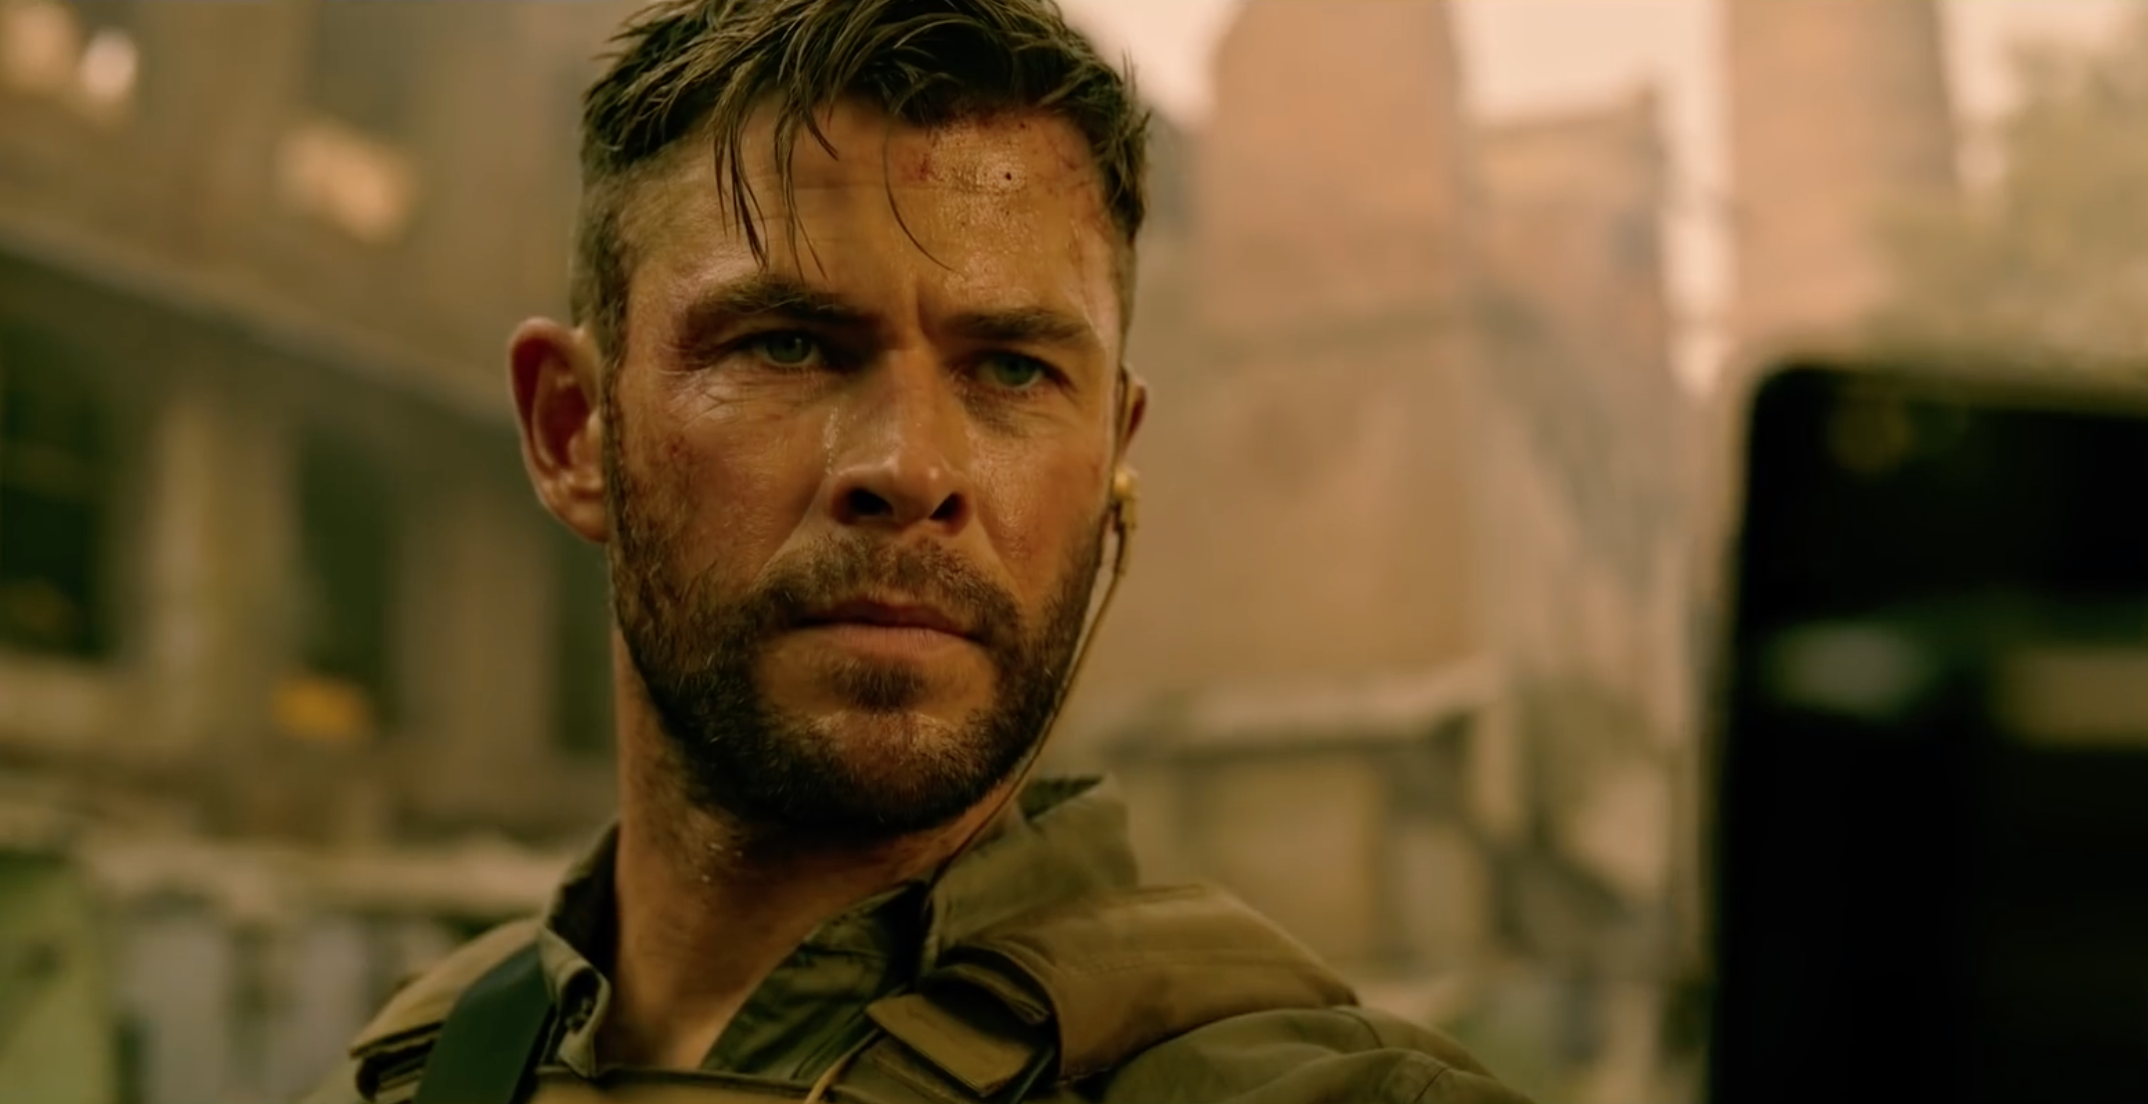 extraction-official-netflix-trailer-1214374.png